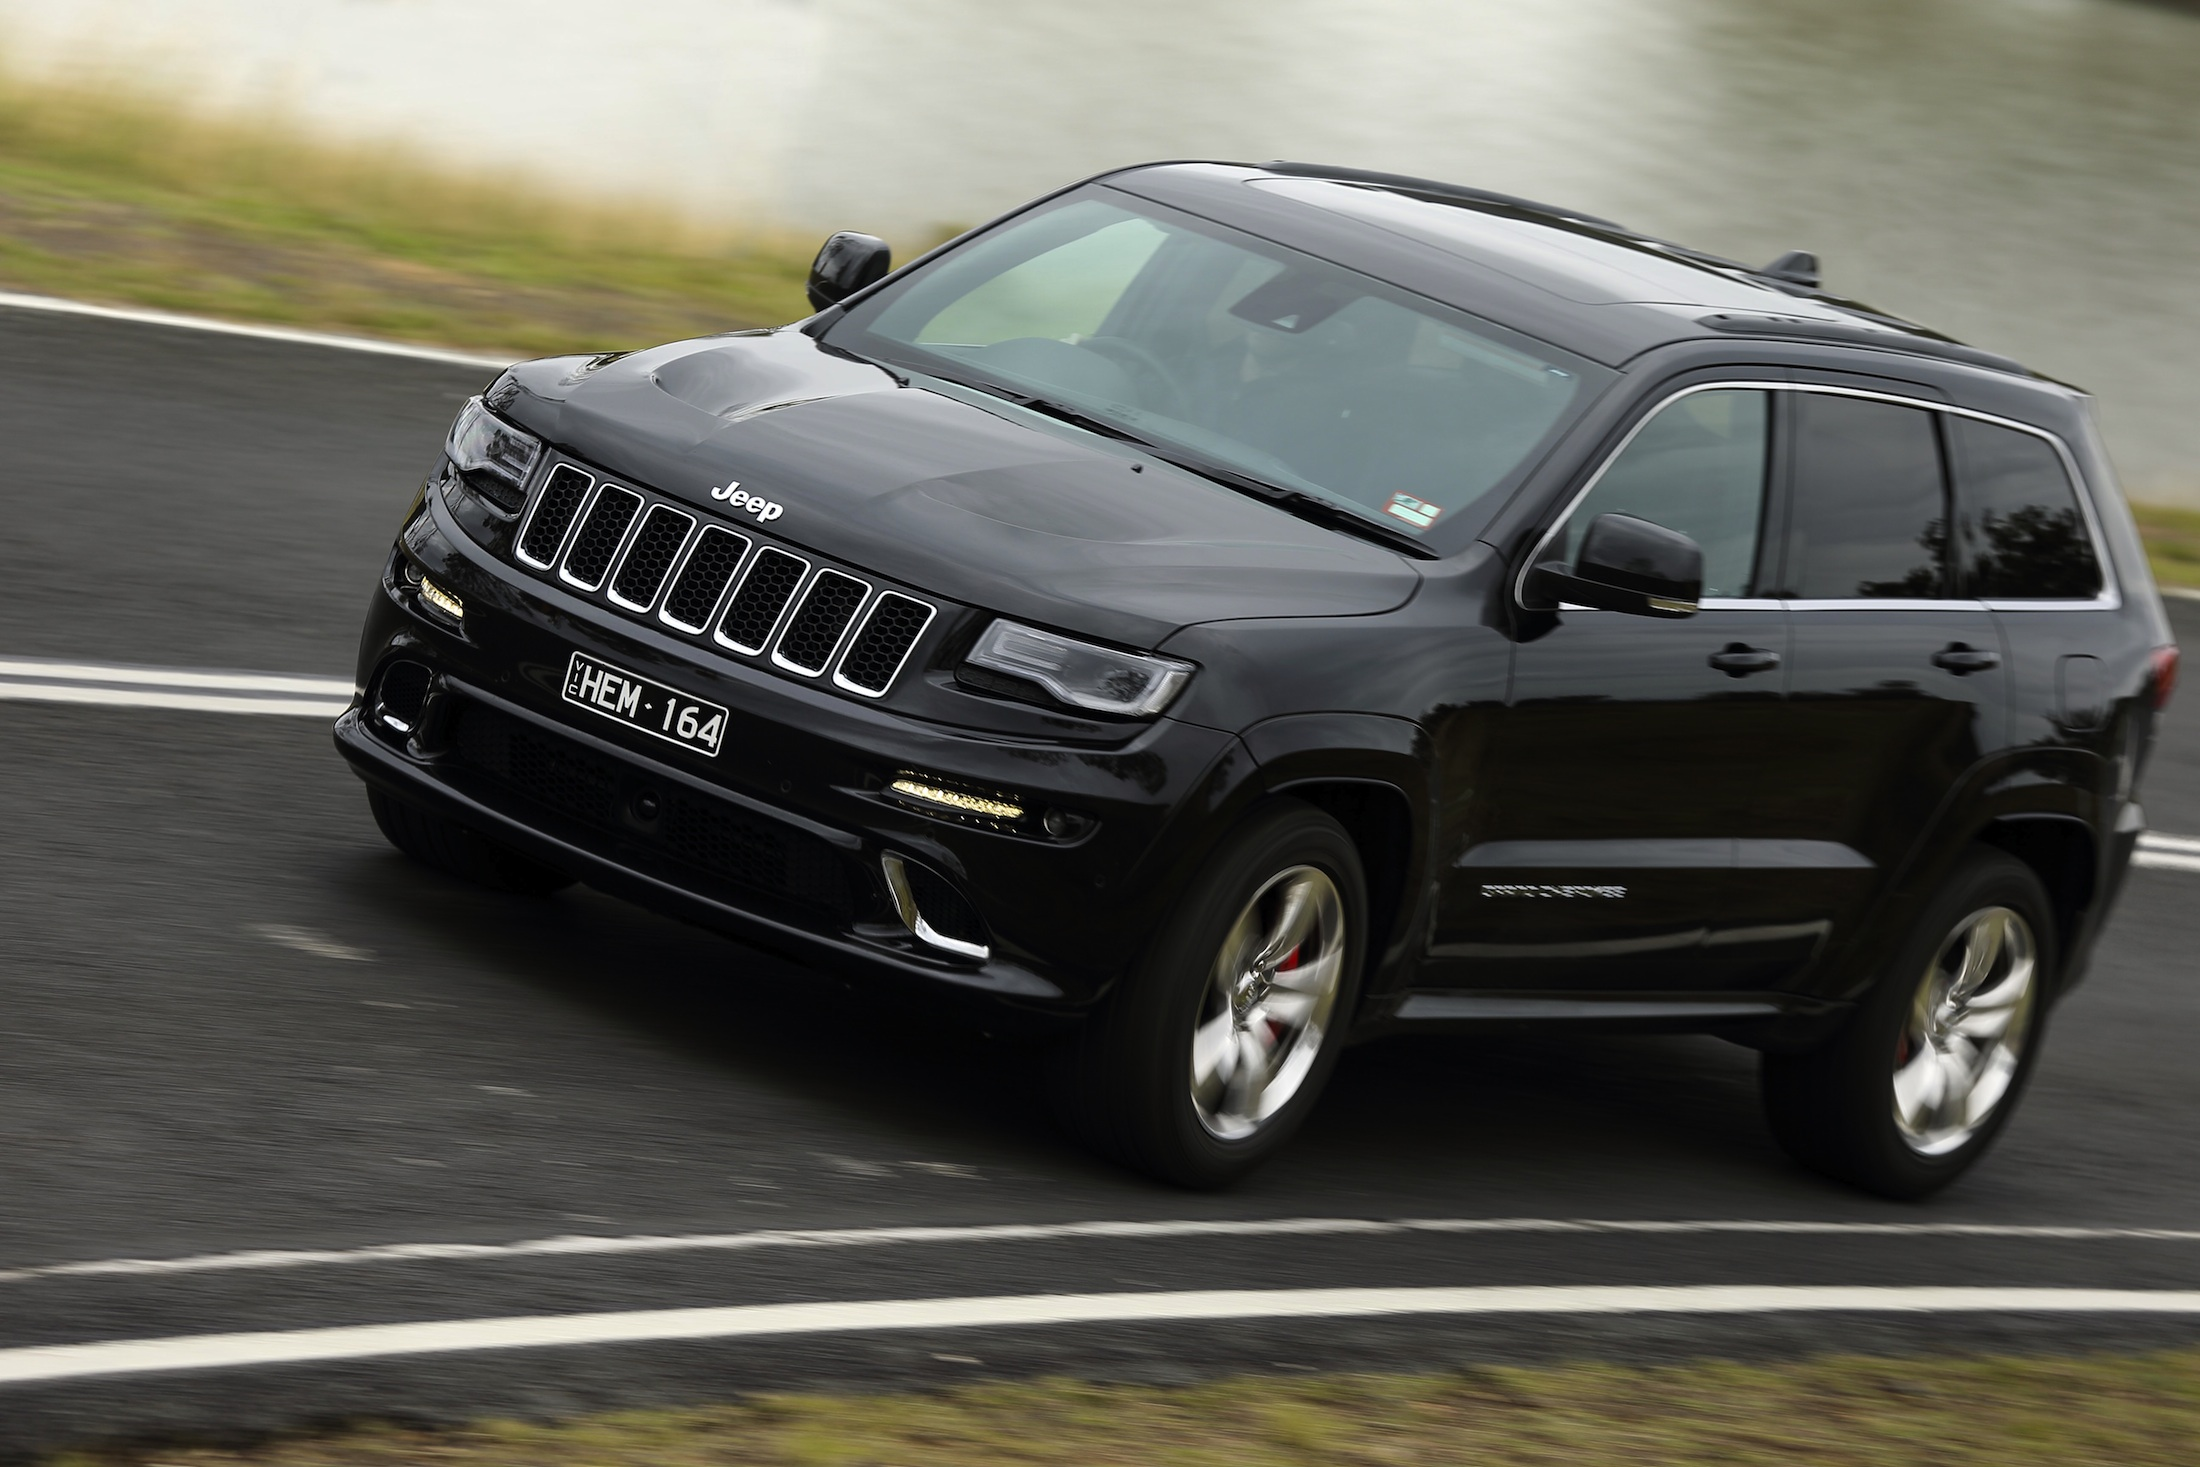 2013 Jeep Grand Cherokee Pricing And Specifications